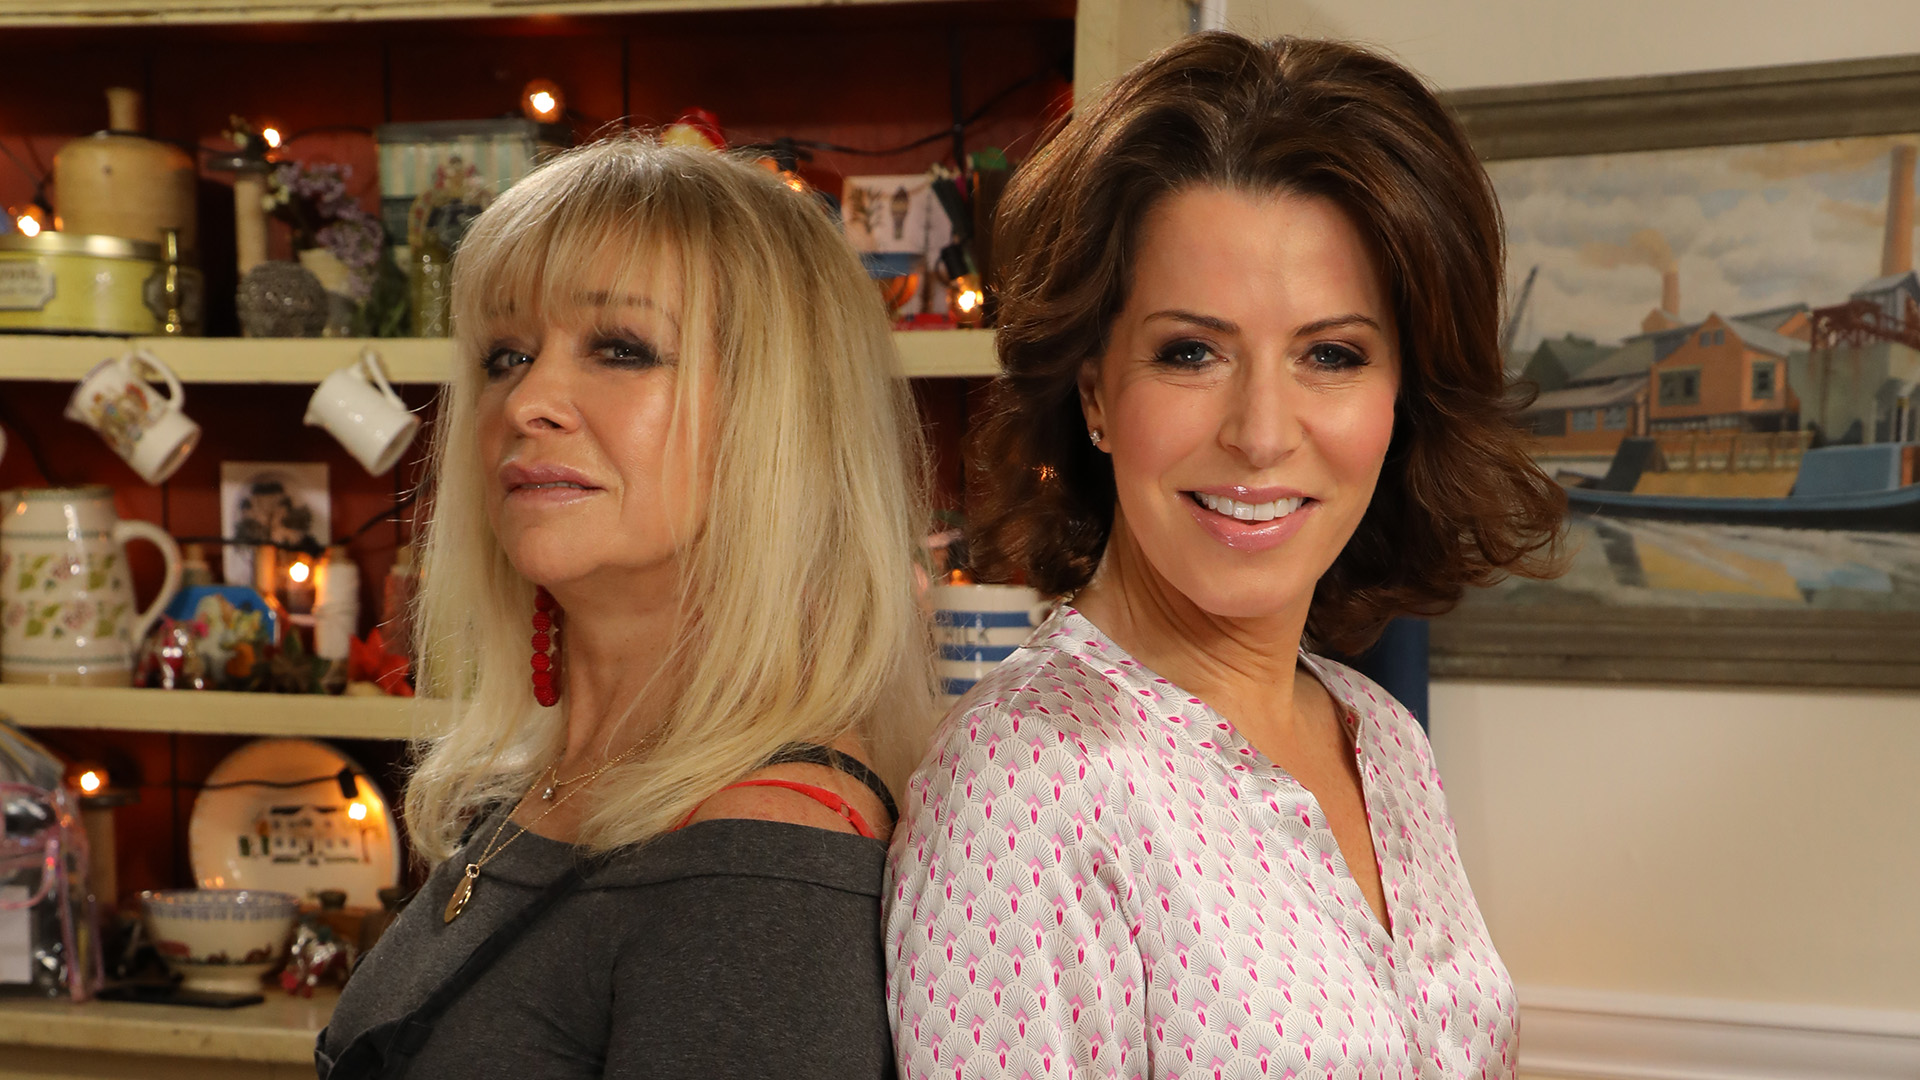 Jo Wood and Natasha Kaplinsky compete in 'Kirstie's Celebrity Craft Masters' (Credit: Channel 4)